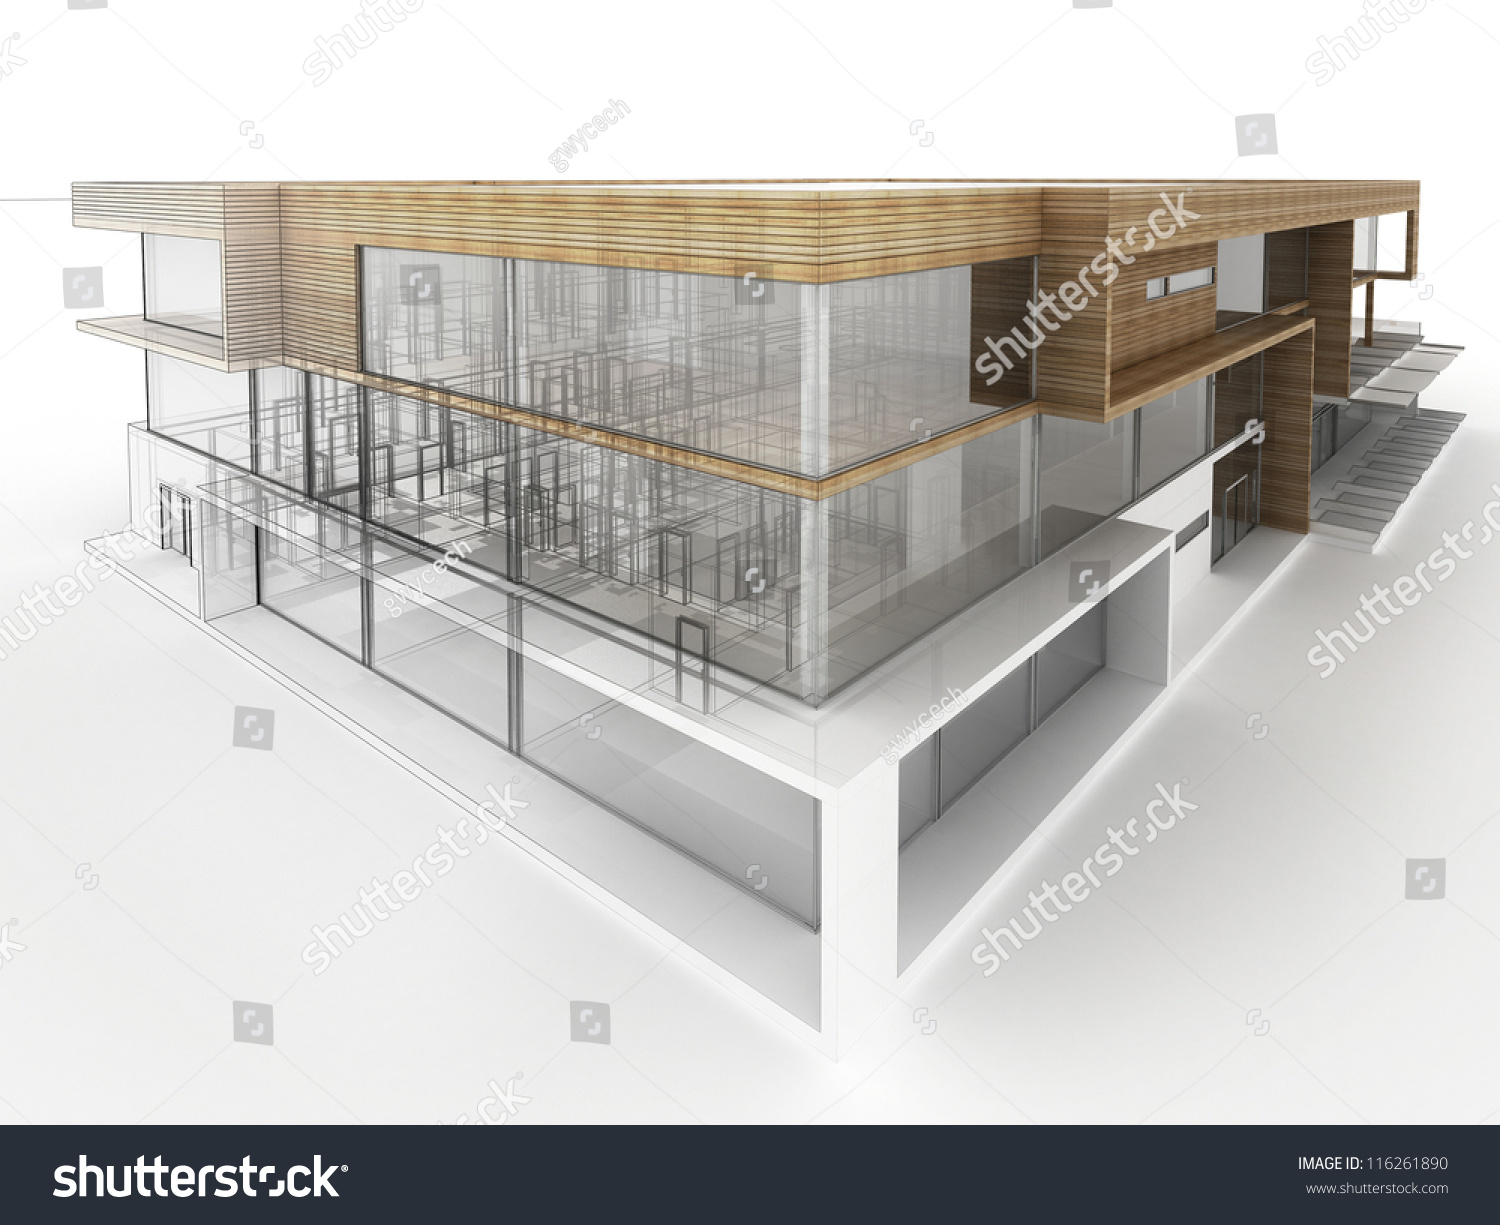 Design Of Modern Office Building. Architects And Designers Computer  Generated Visualization.